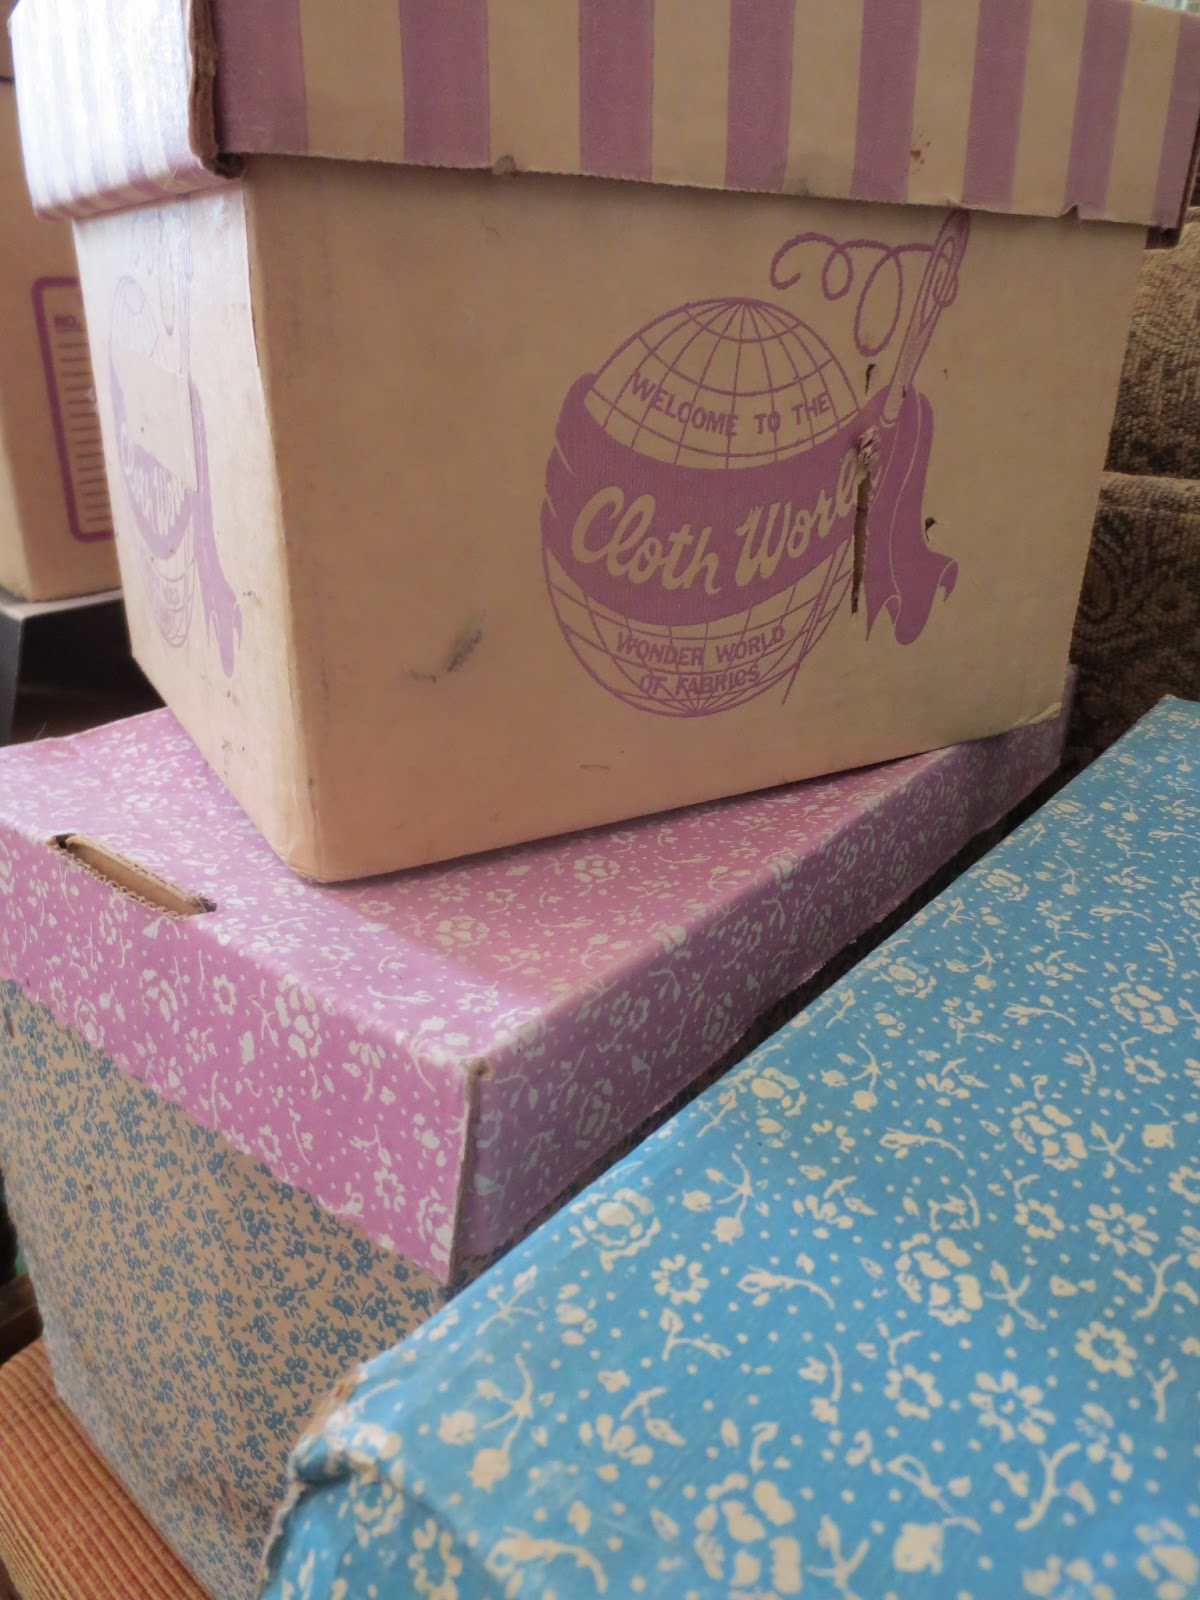 Vintage Patterns in Cloth World Boxes Brentwood Lane